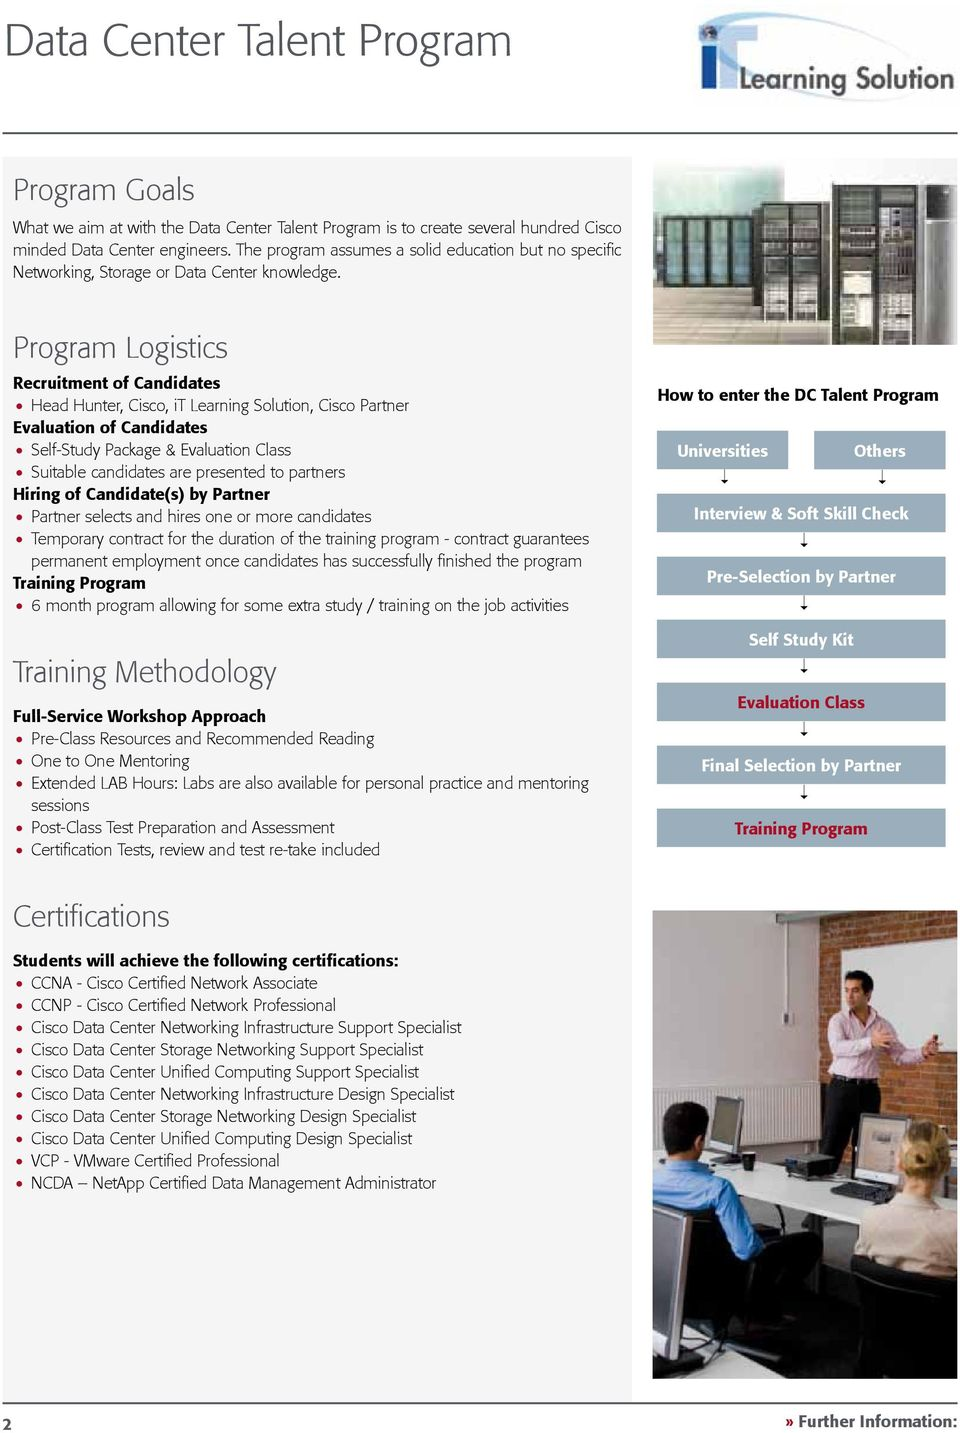 Program Logistics Recruitment of Candidates Head Hunter, Cisco, it Learning Solution, Cisco Partner Evaluation of Candidates Self-Study Package & Evaluation Class Suitable candidates are presented to